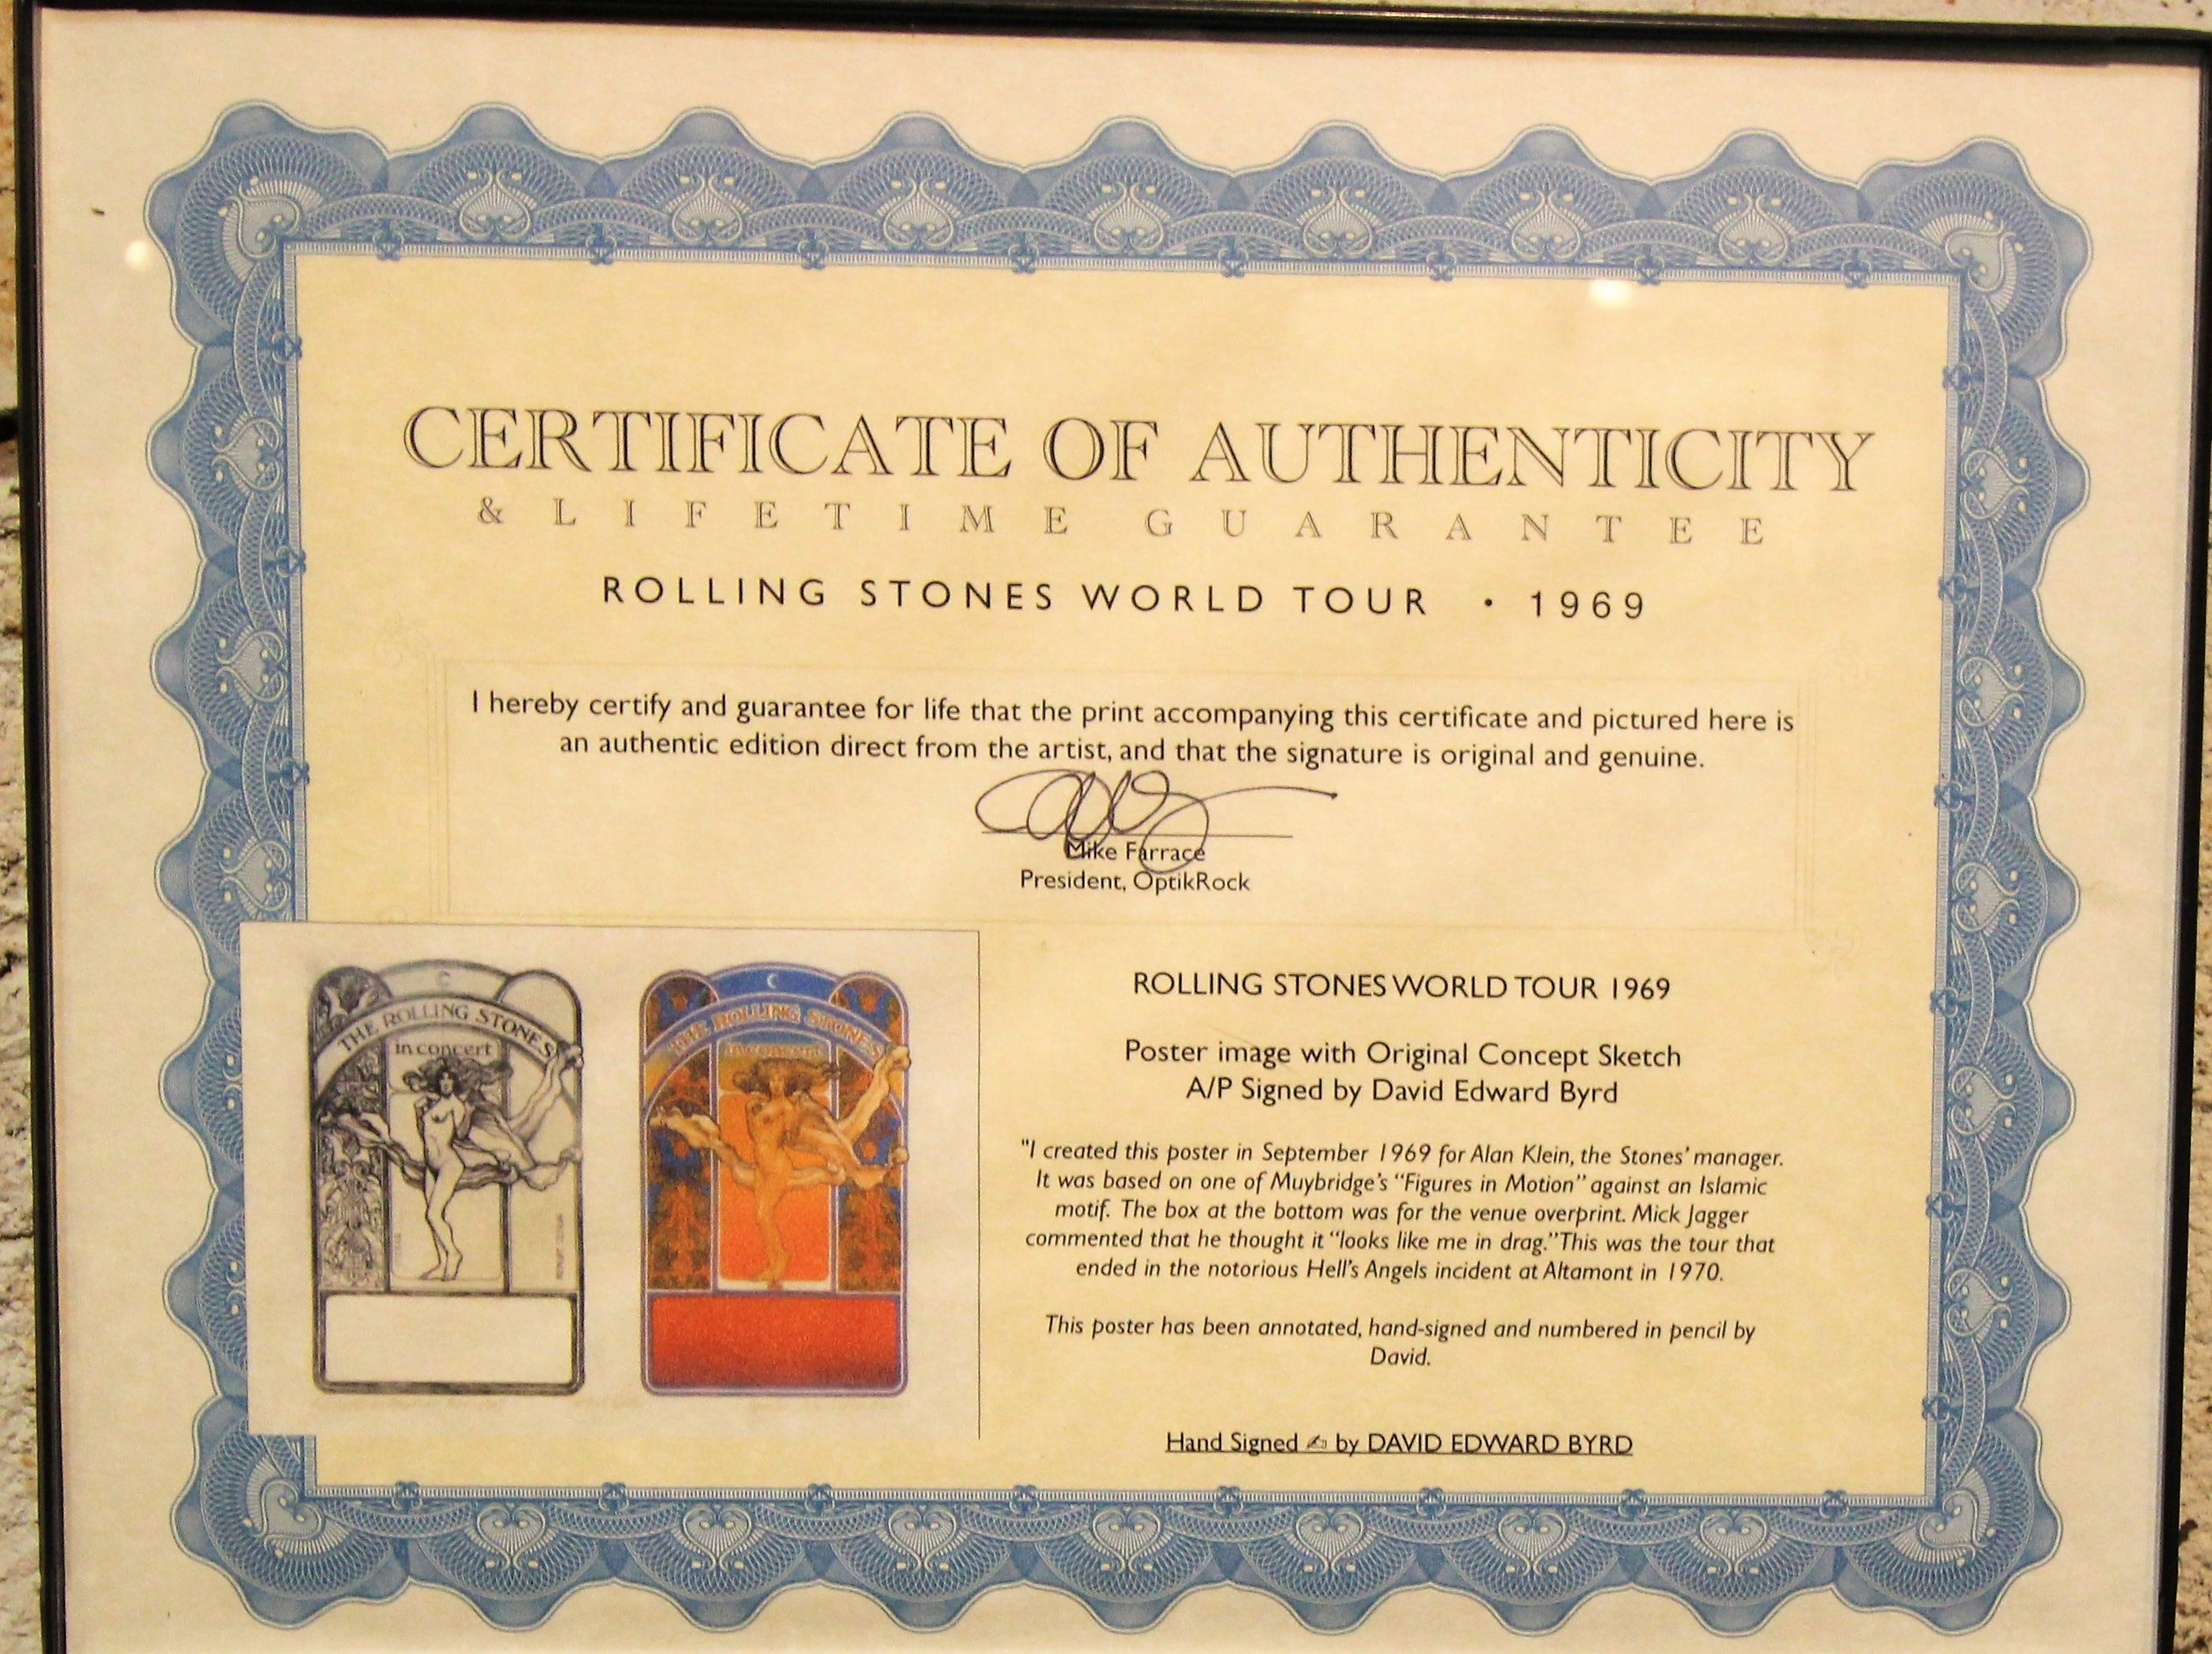 The way back machine. A signed letter of Authenticity is just one of the many signatures from rock and roll's history highlighting decades of a collection that began so many years ago.